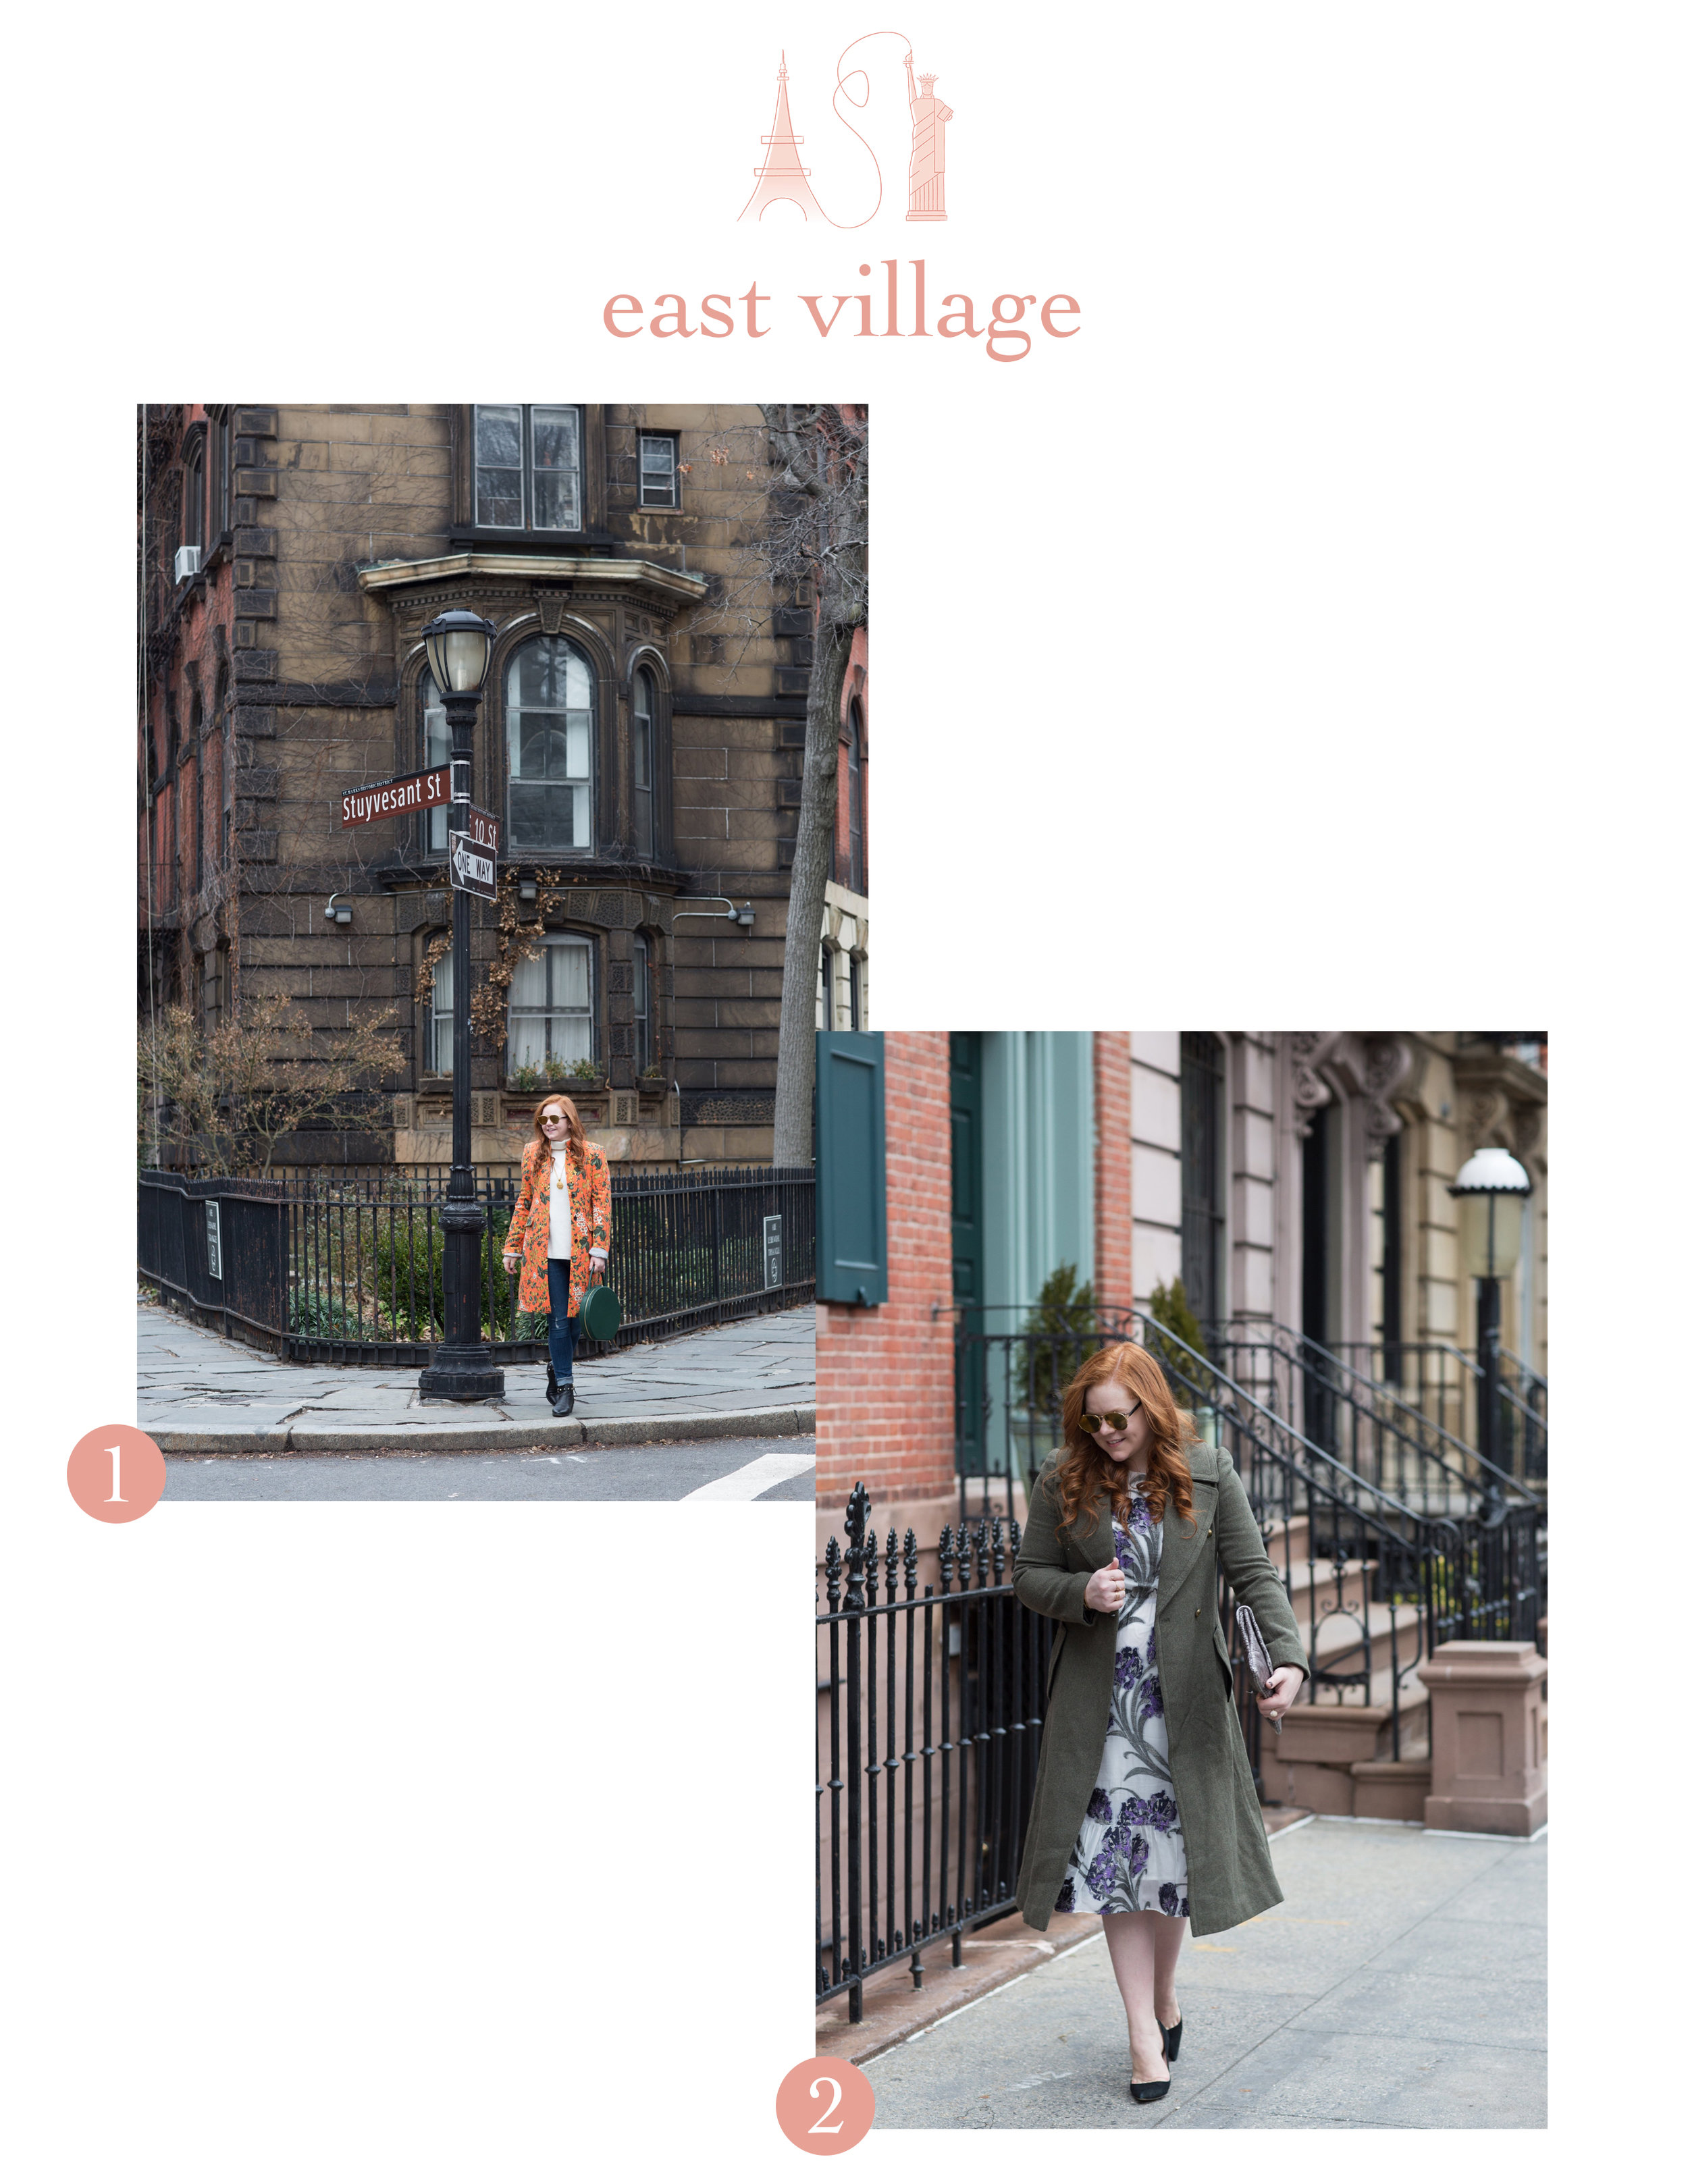 east_village_photo_locations.jpg